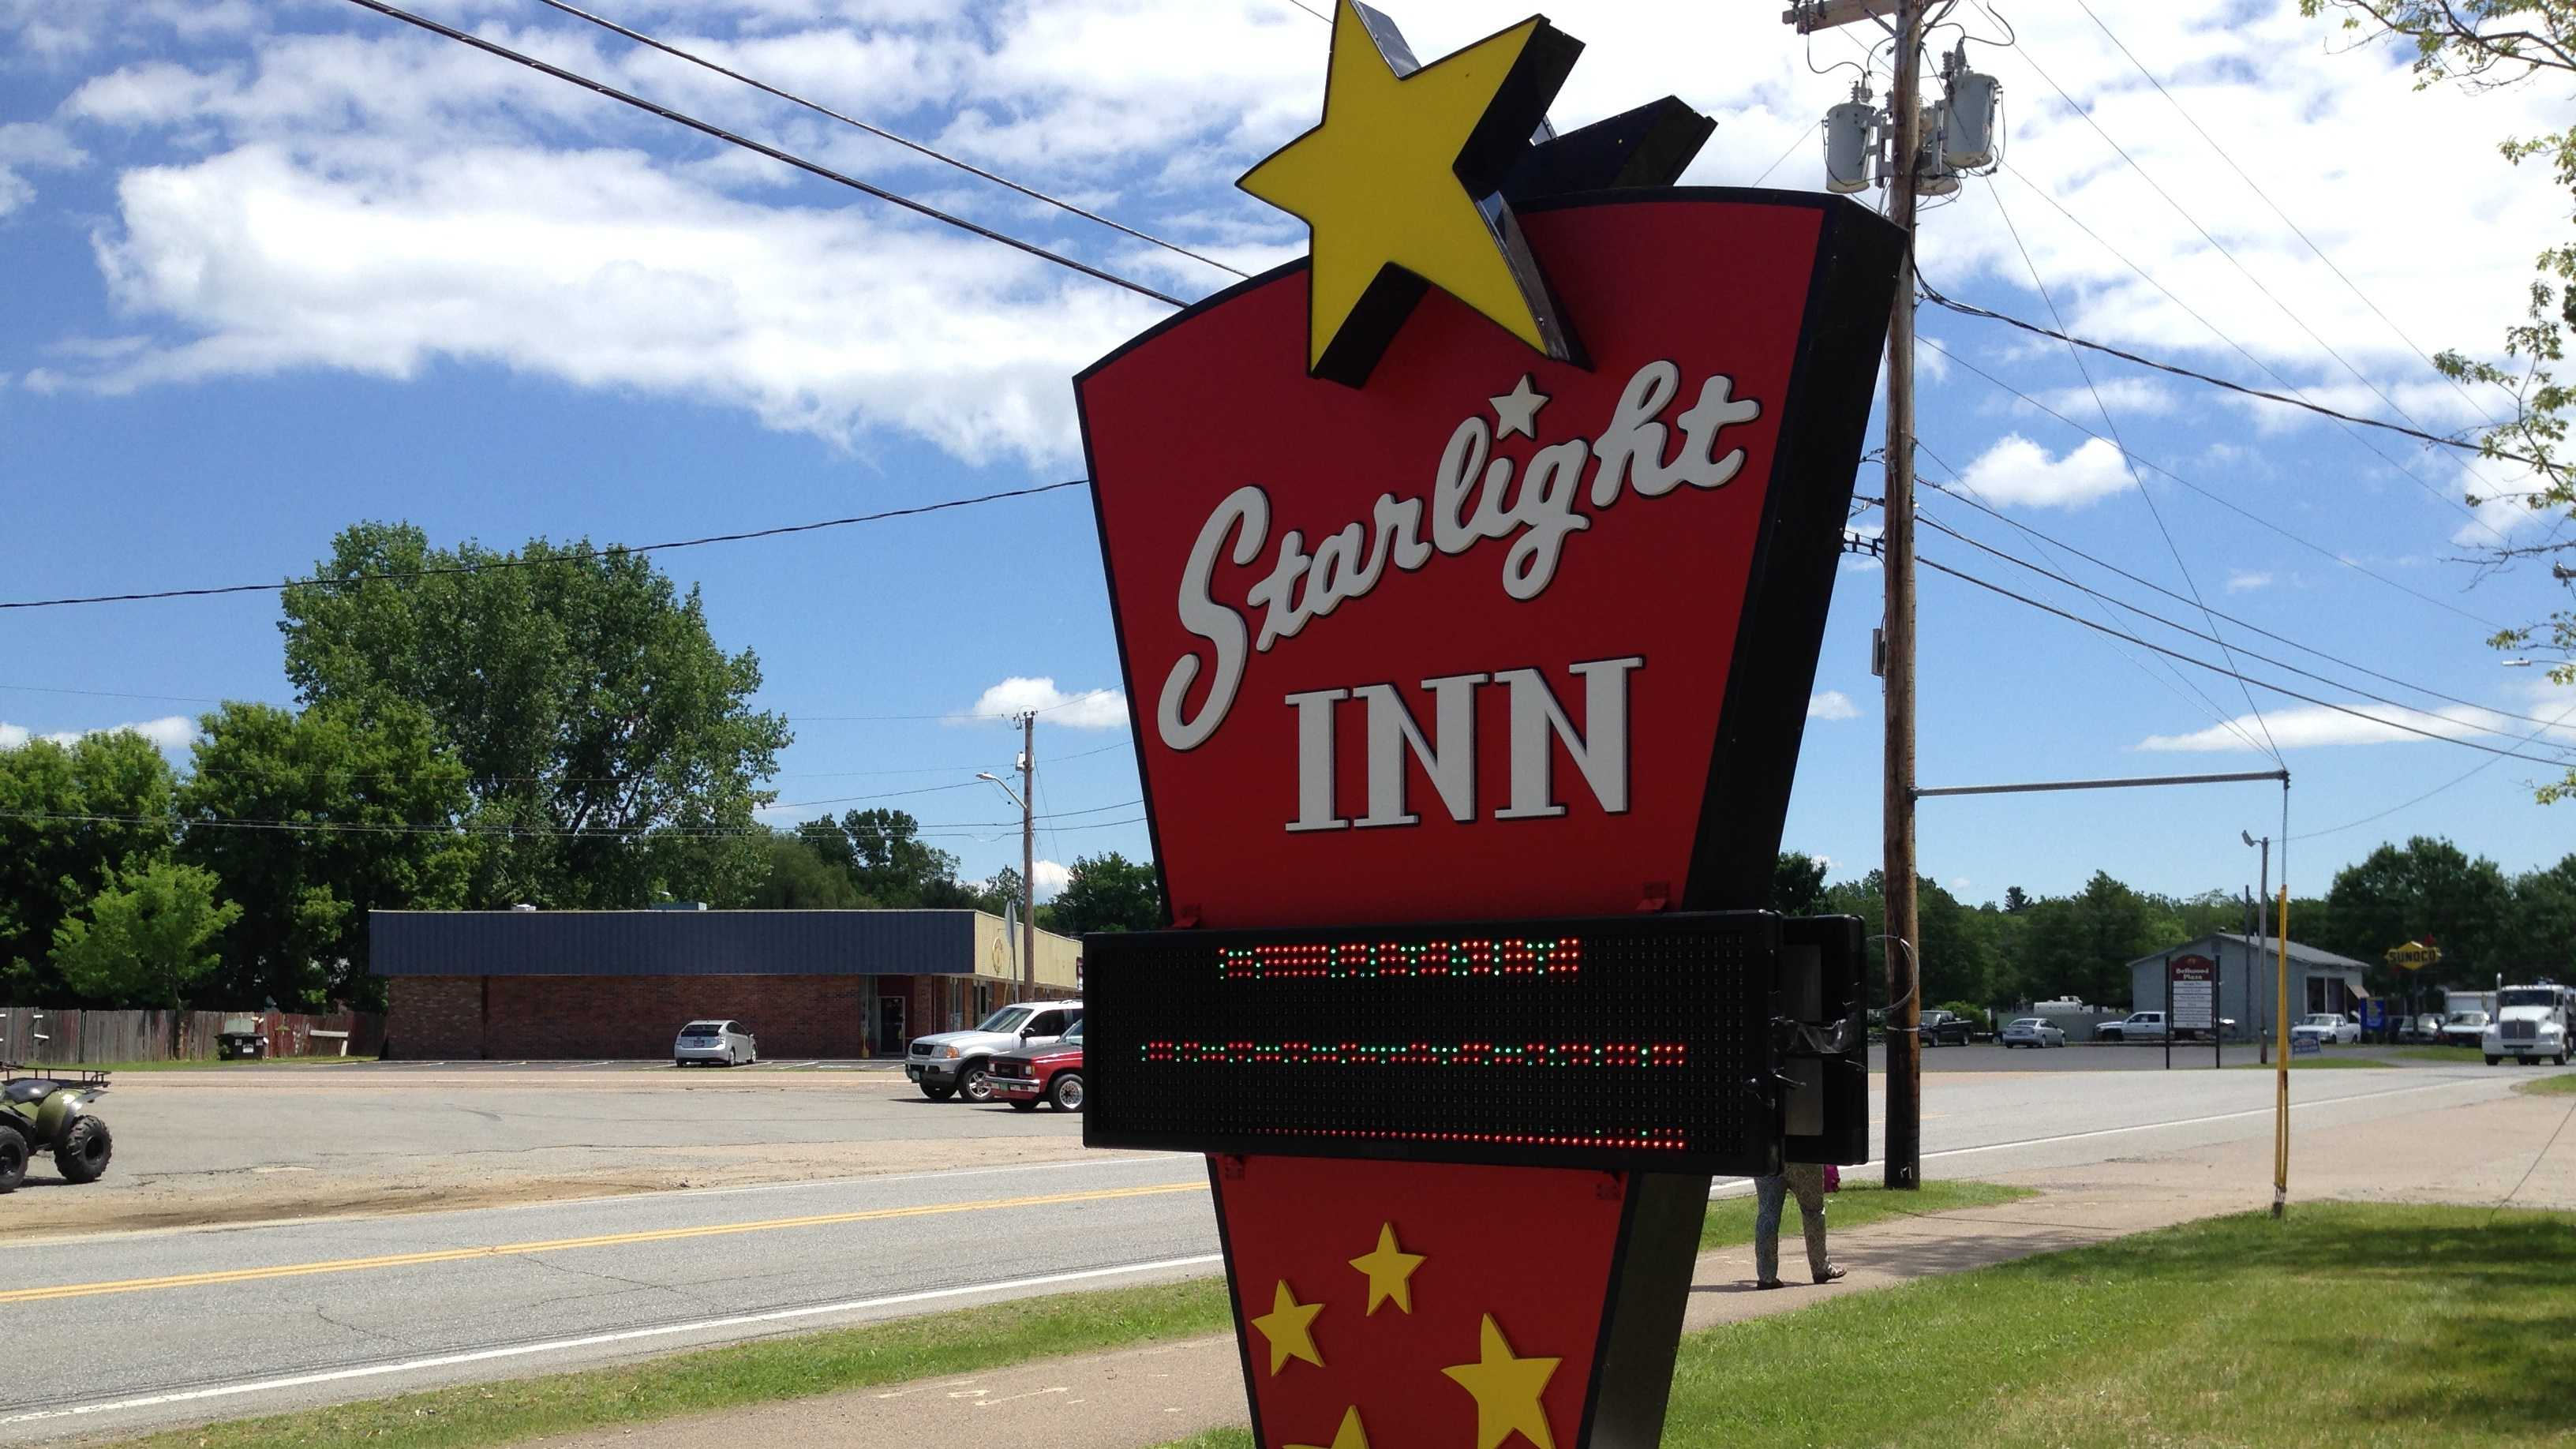 The Starlight Inn features rooms named after movie stars, but the owner says it is more than just a nostalgic gimmick.